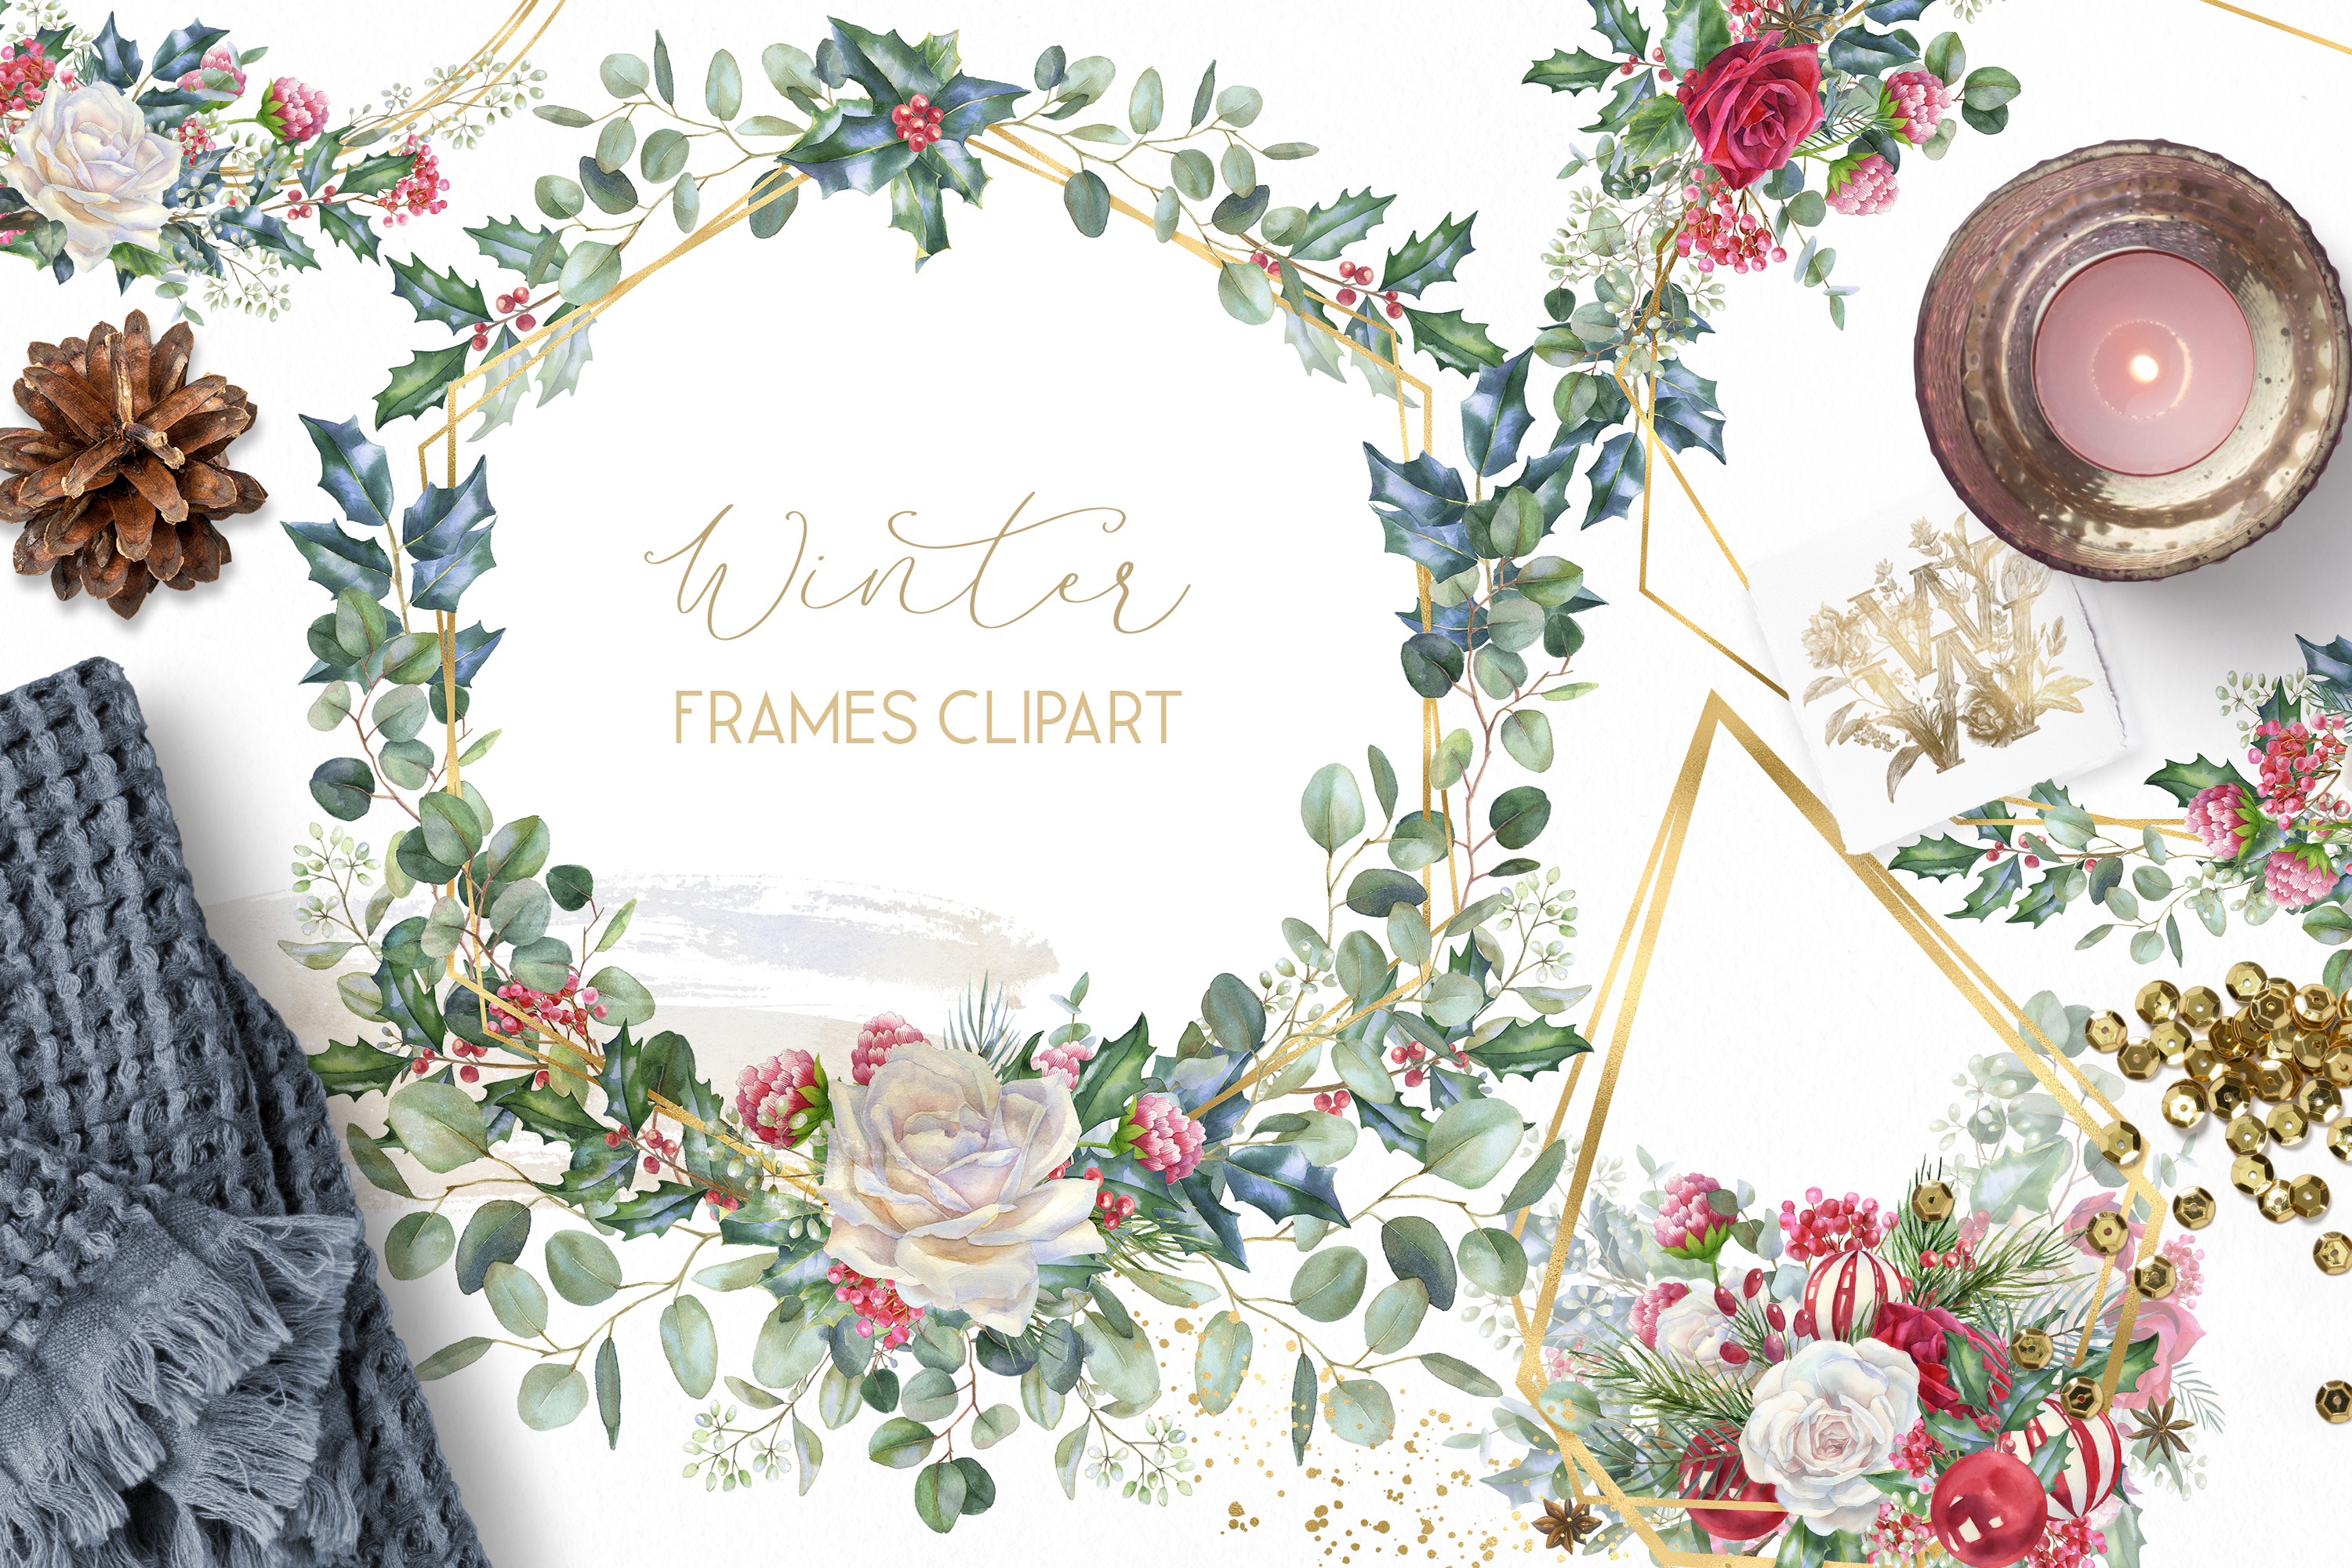 Winter frames clipart, watercolor Christmas borders png example image 1